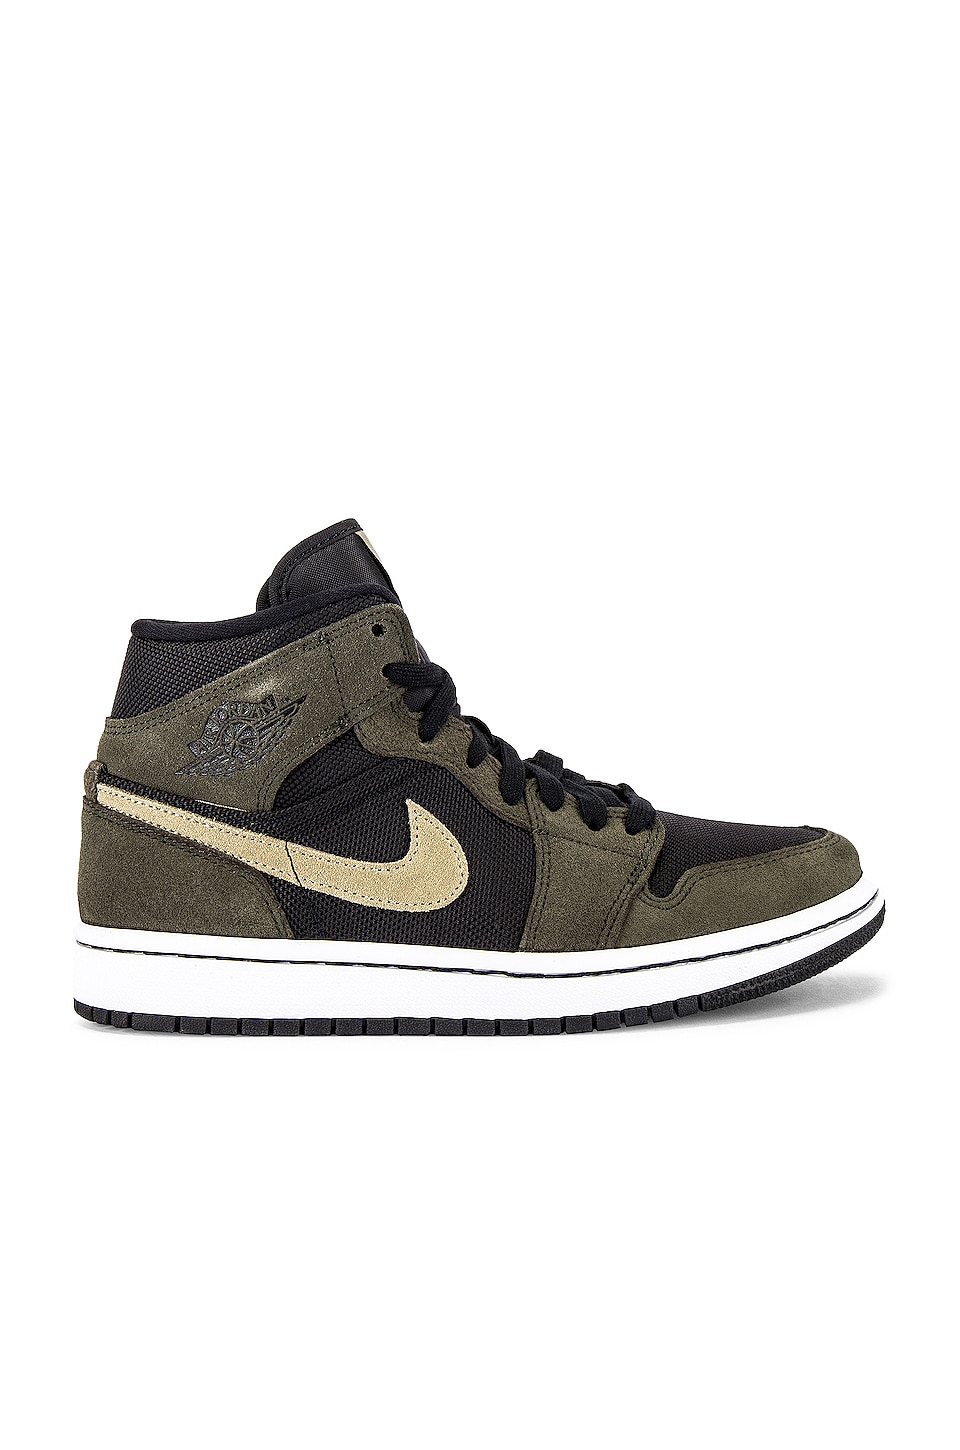 Jordan AJ 1 Mid Sneaker in Black & Trooper